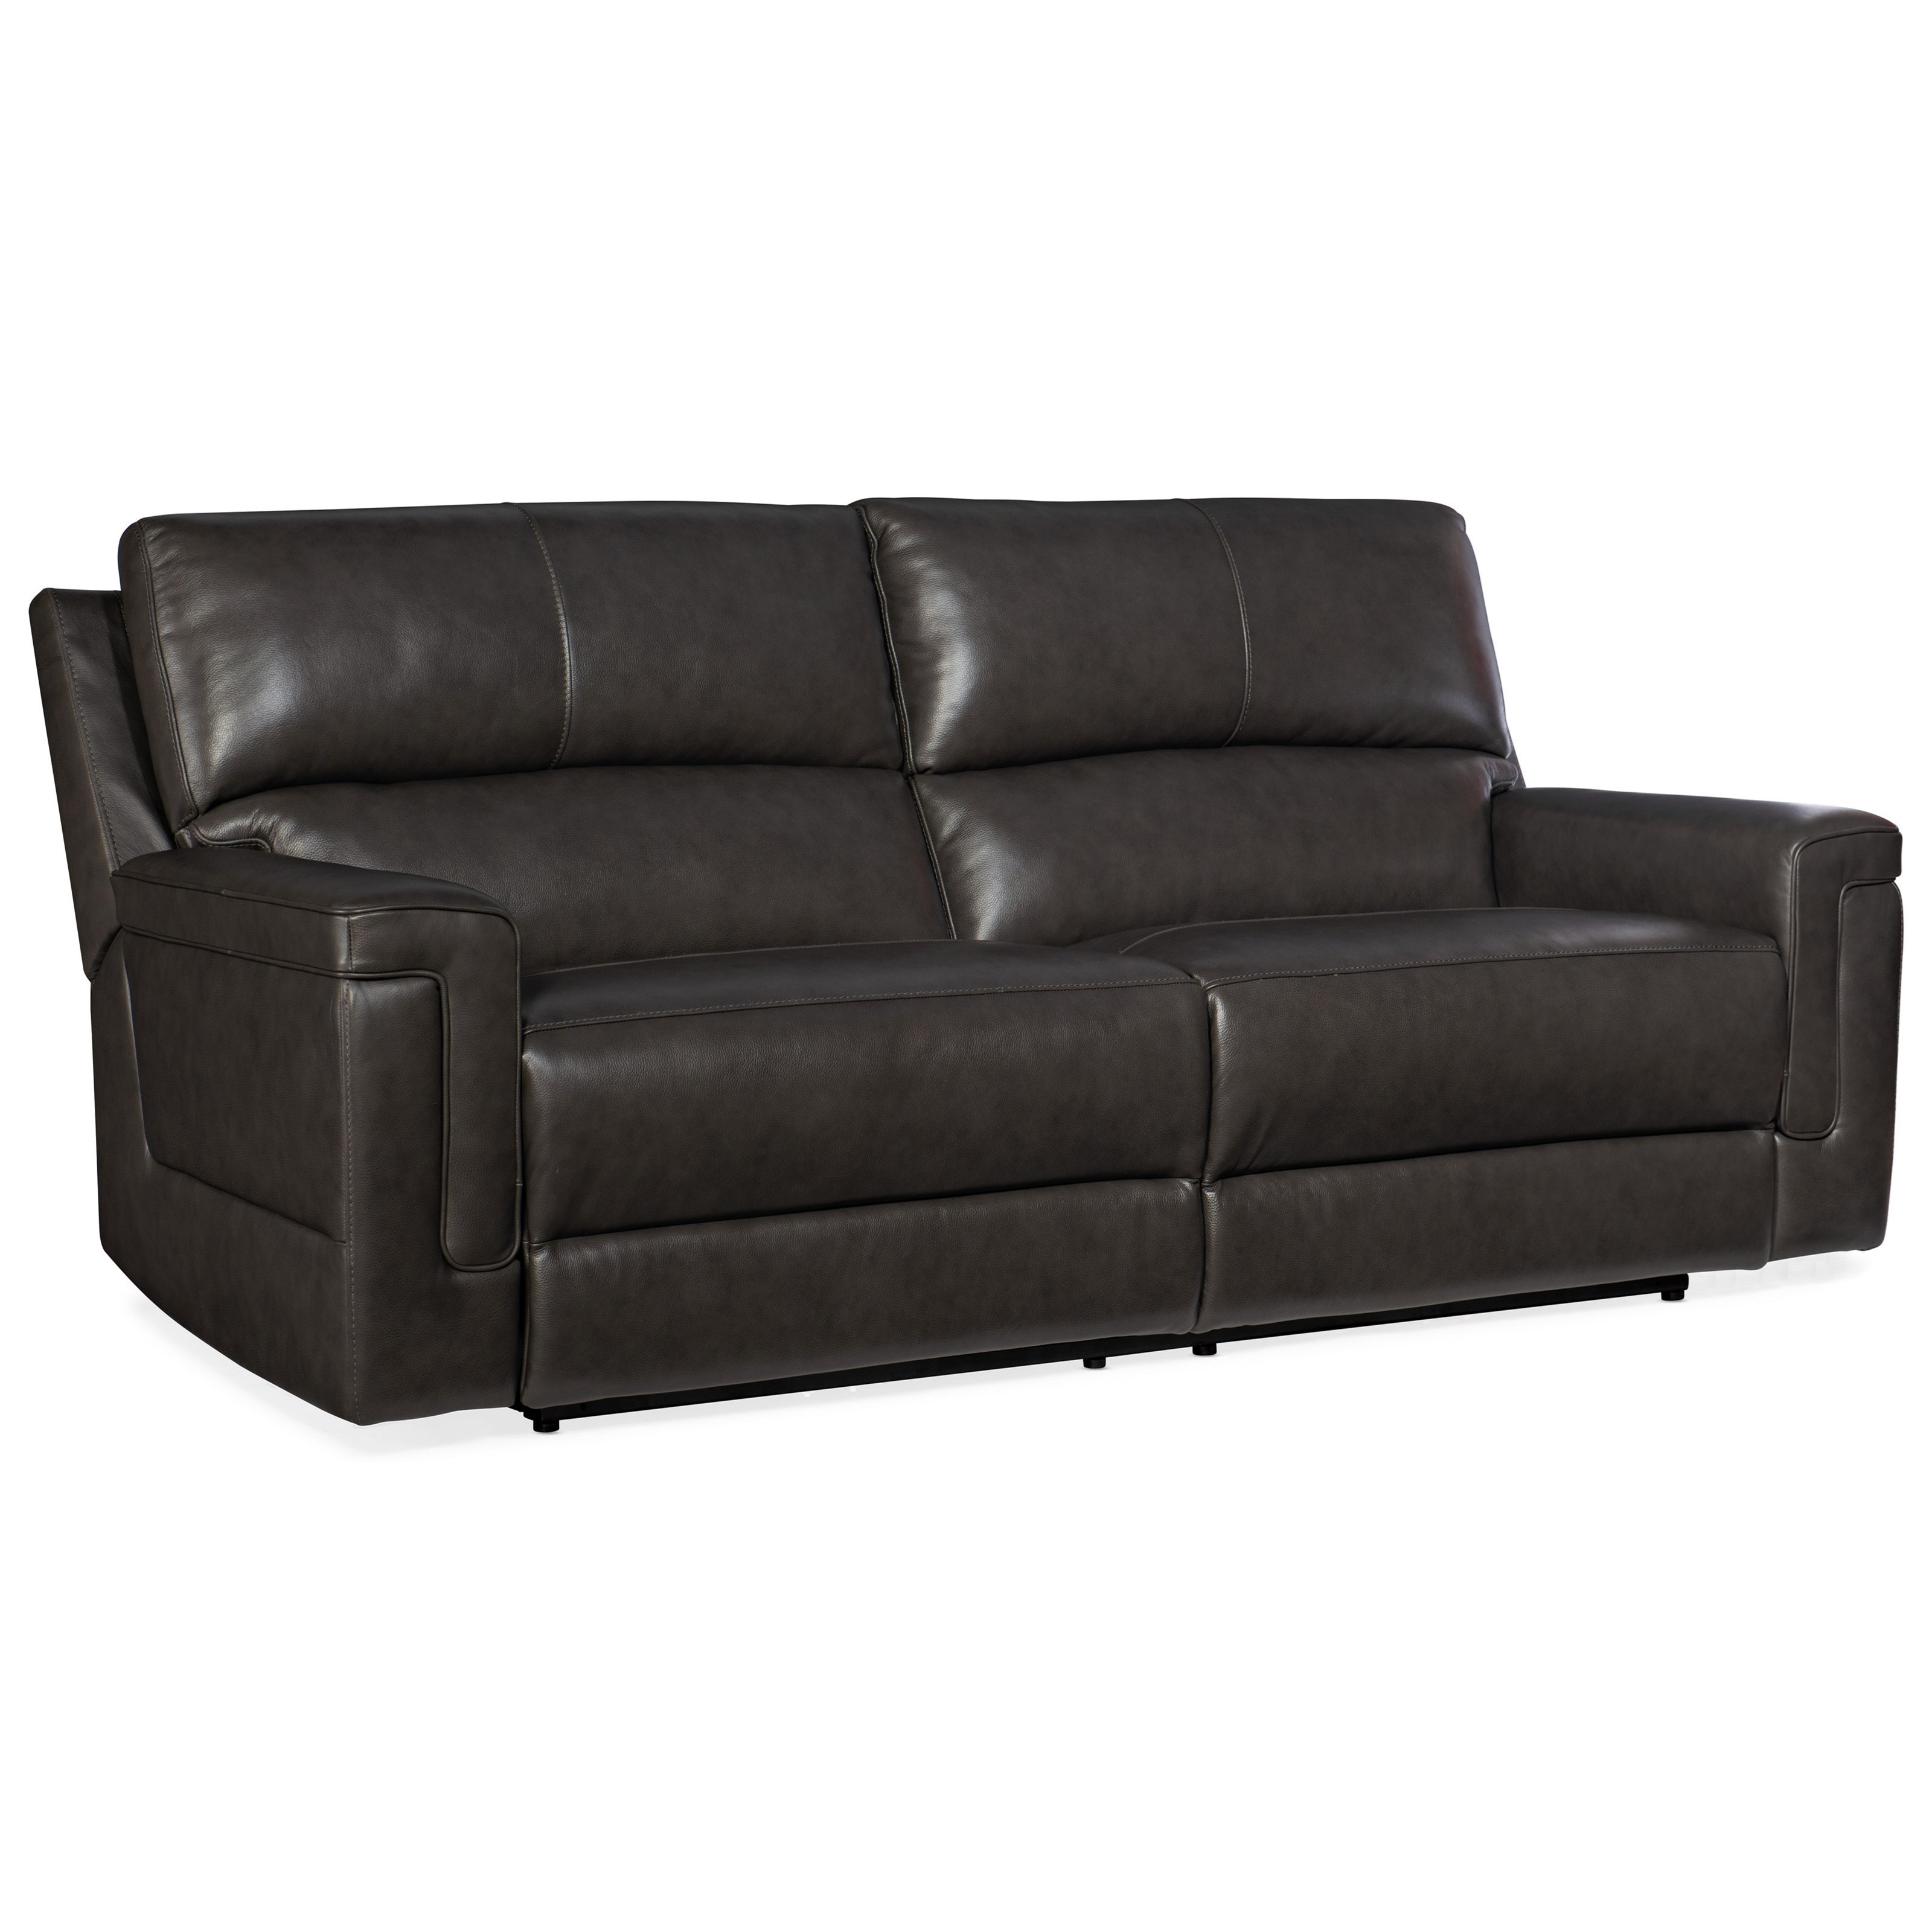 Casual Contemporary Power Reclining Leather Sofa with Power Headrests